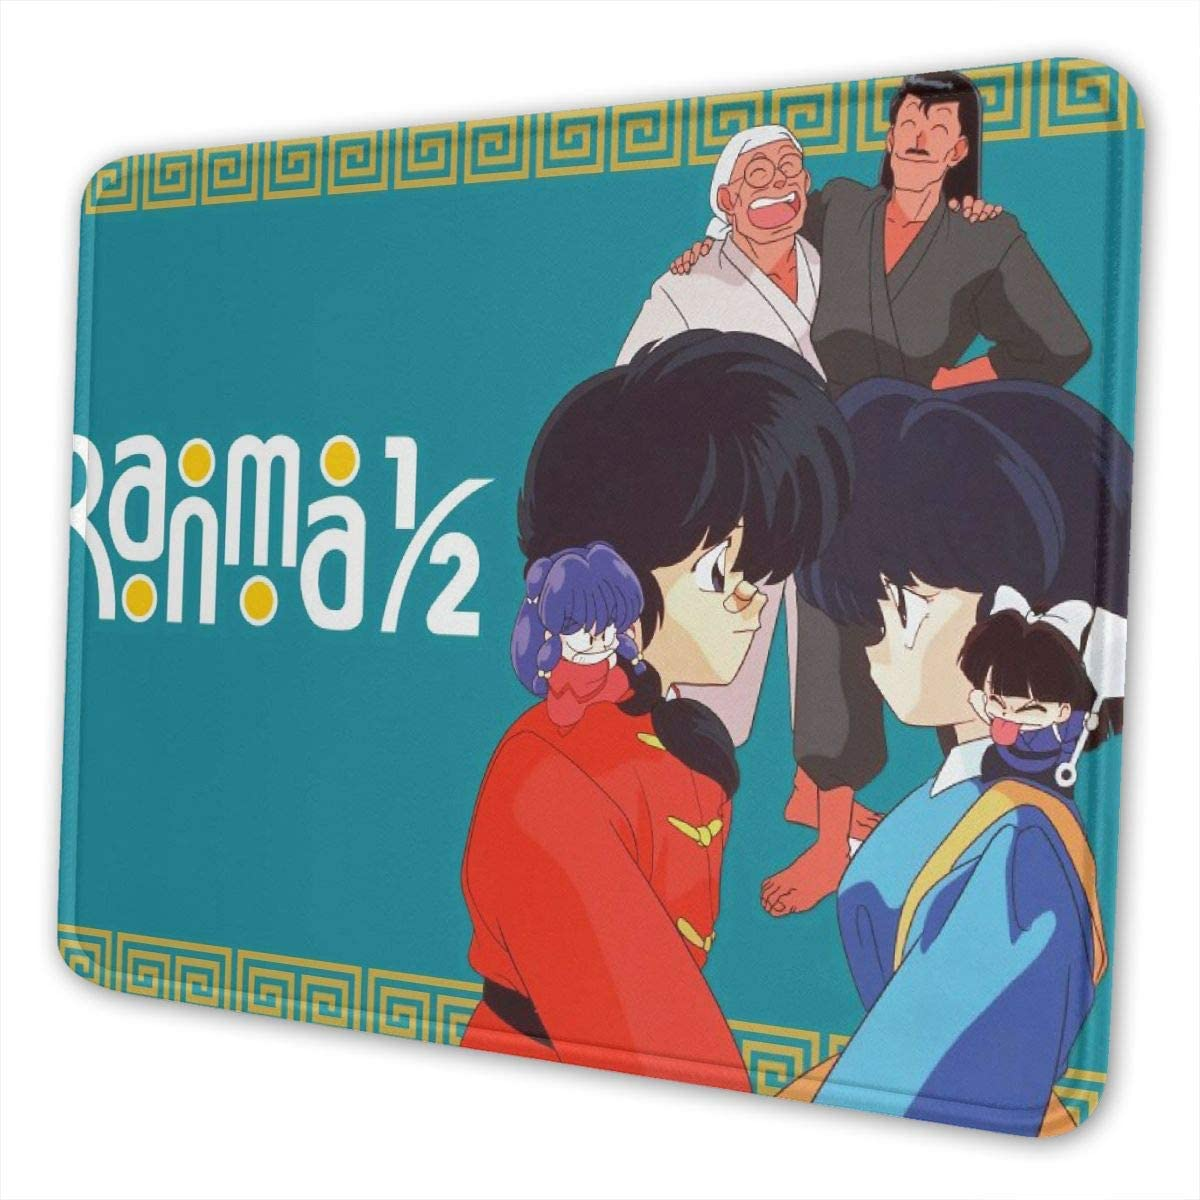 Ranma 1?2 Ranma Tendou Akane Oversize Non-Slip Rubber Thick 3mm Mousepad Computer Gaming Mouse Pad Mat Stitched Edges